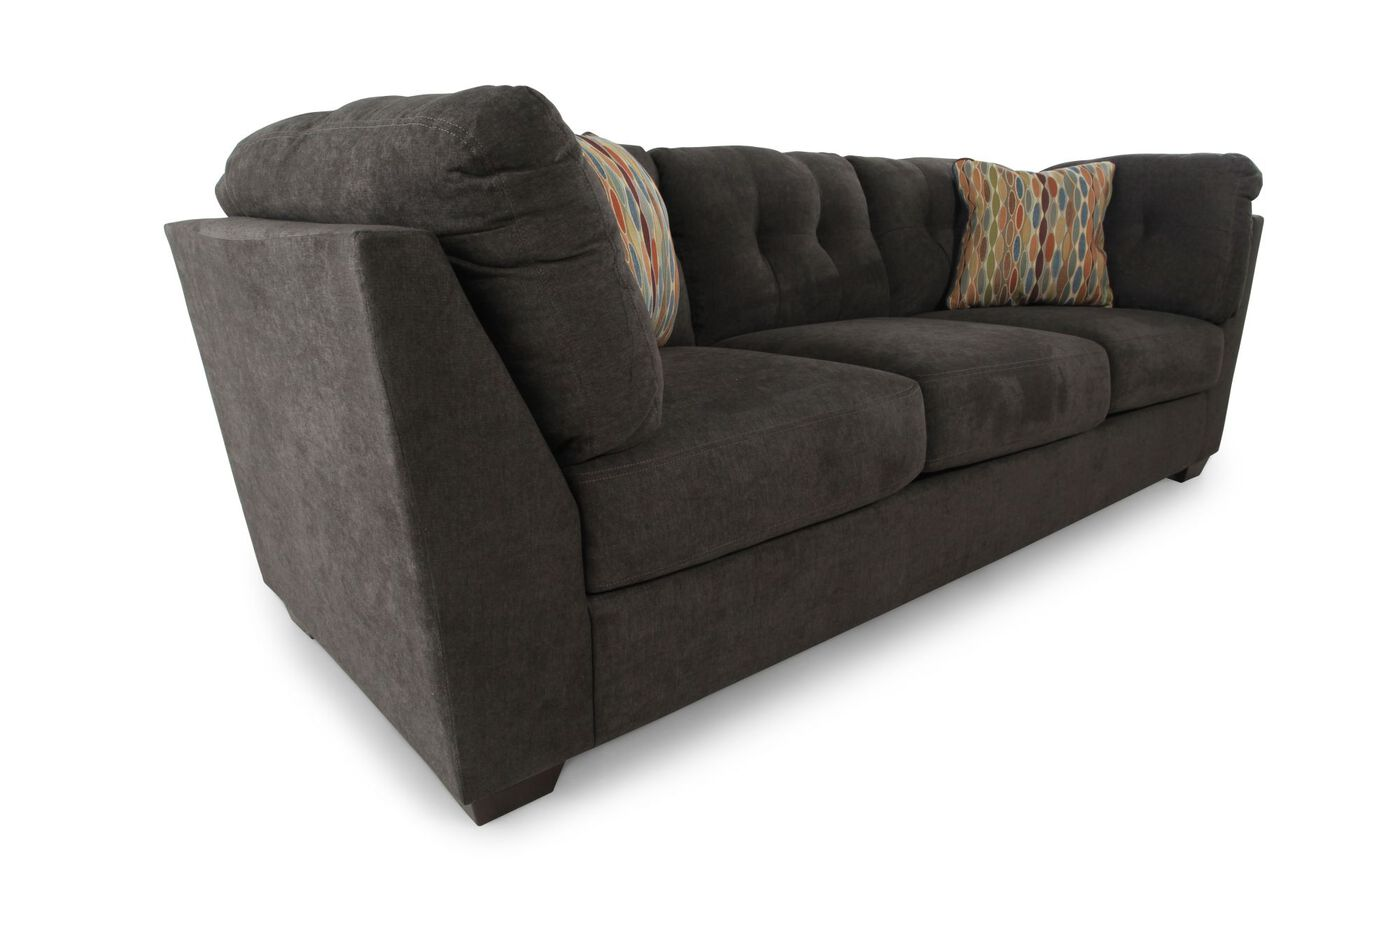 Tufted 103 Microfiber Sofa In Chocolate Brown